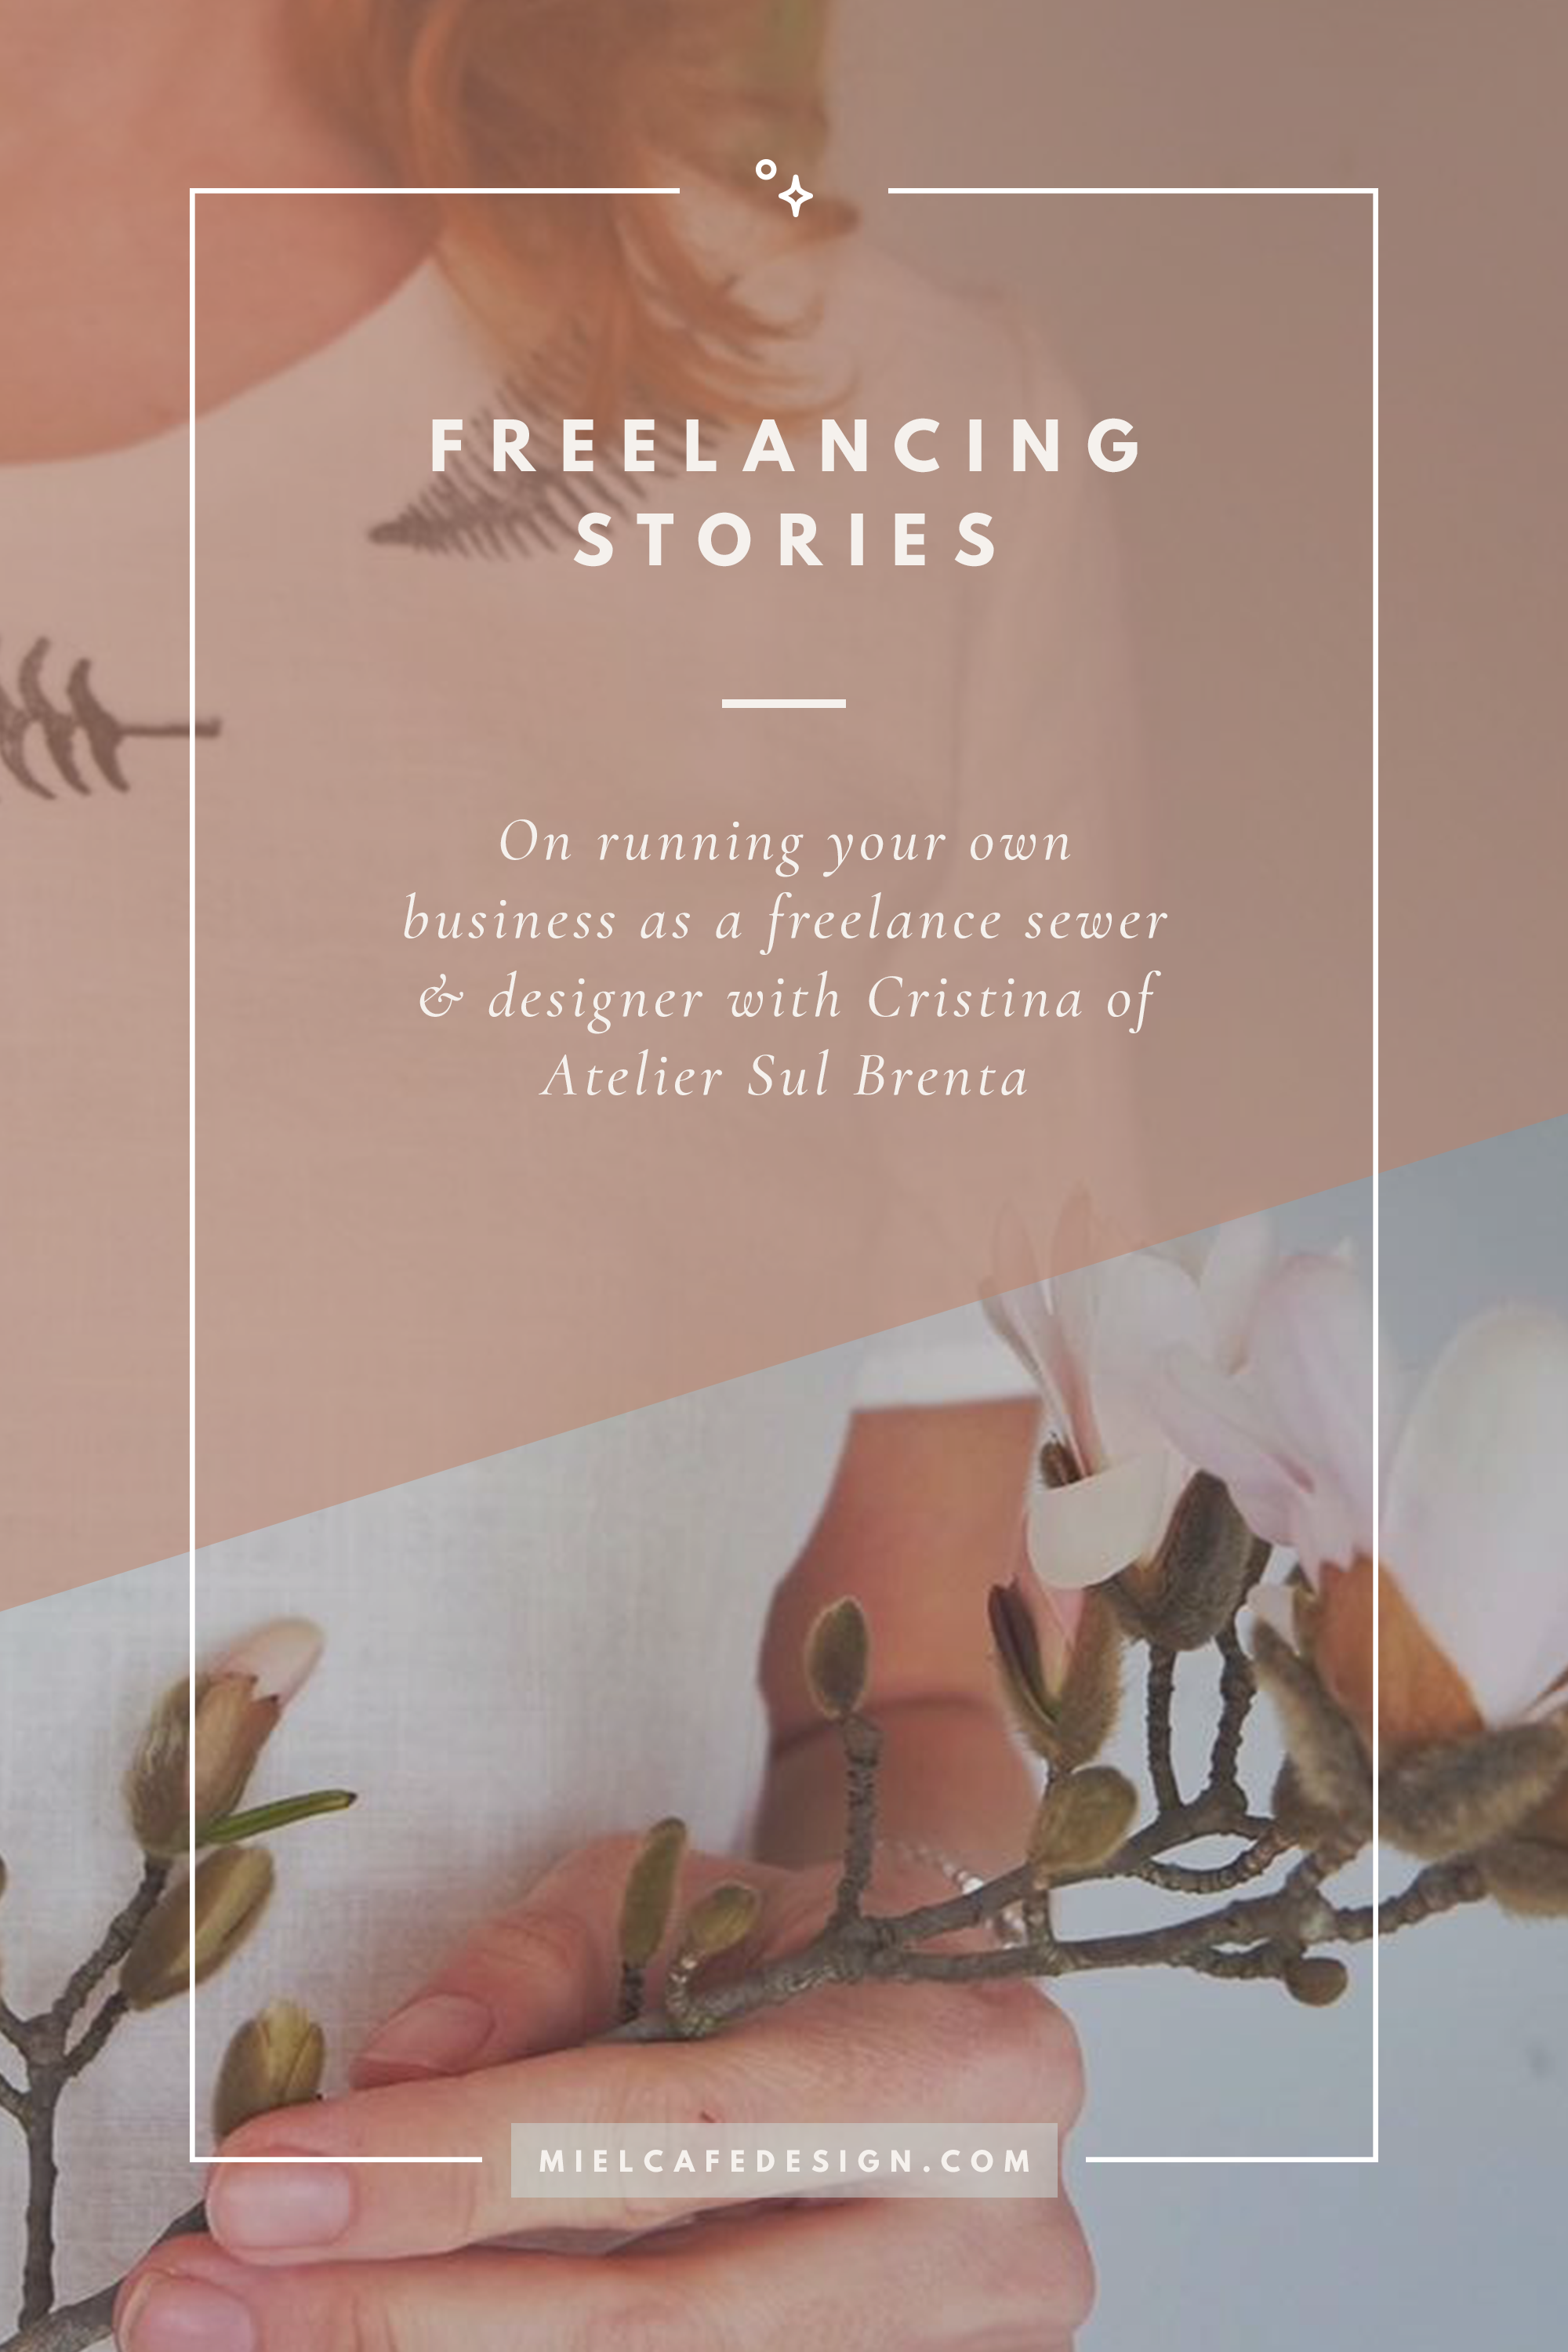 Freelancing Stories: On Running a Business as a Freelance Sewer & Designer with Cristina of Atelier Sul Brenta